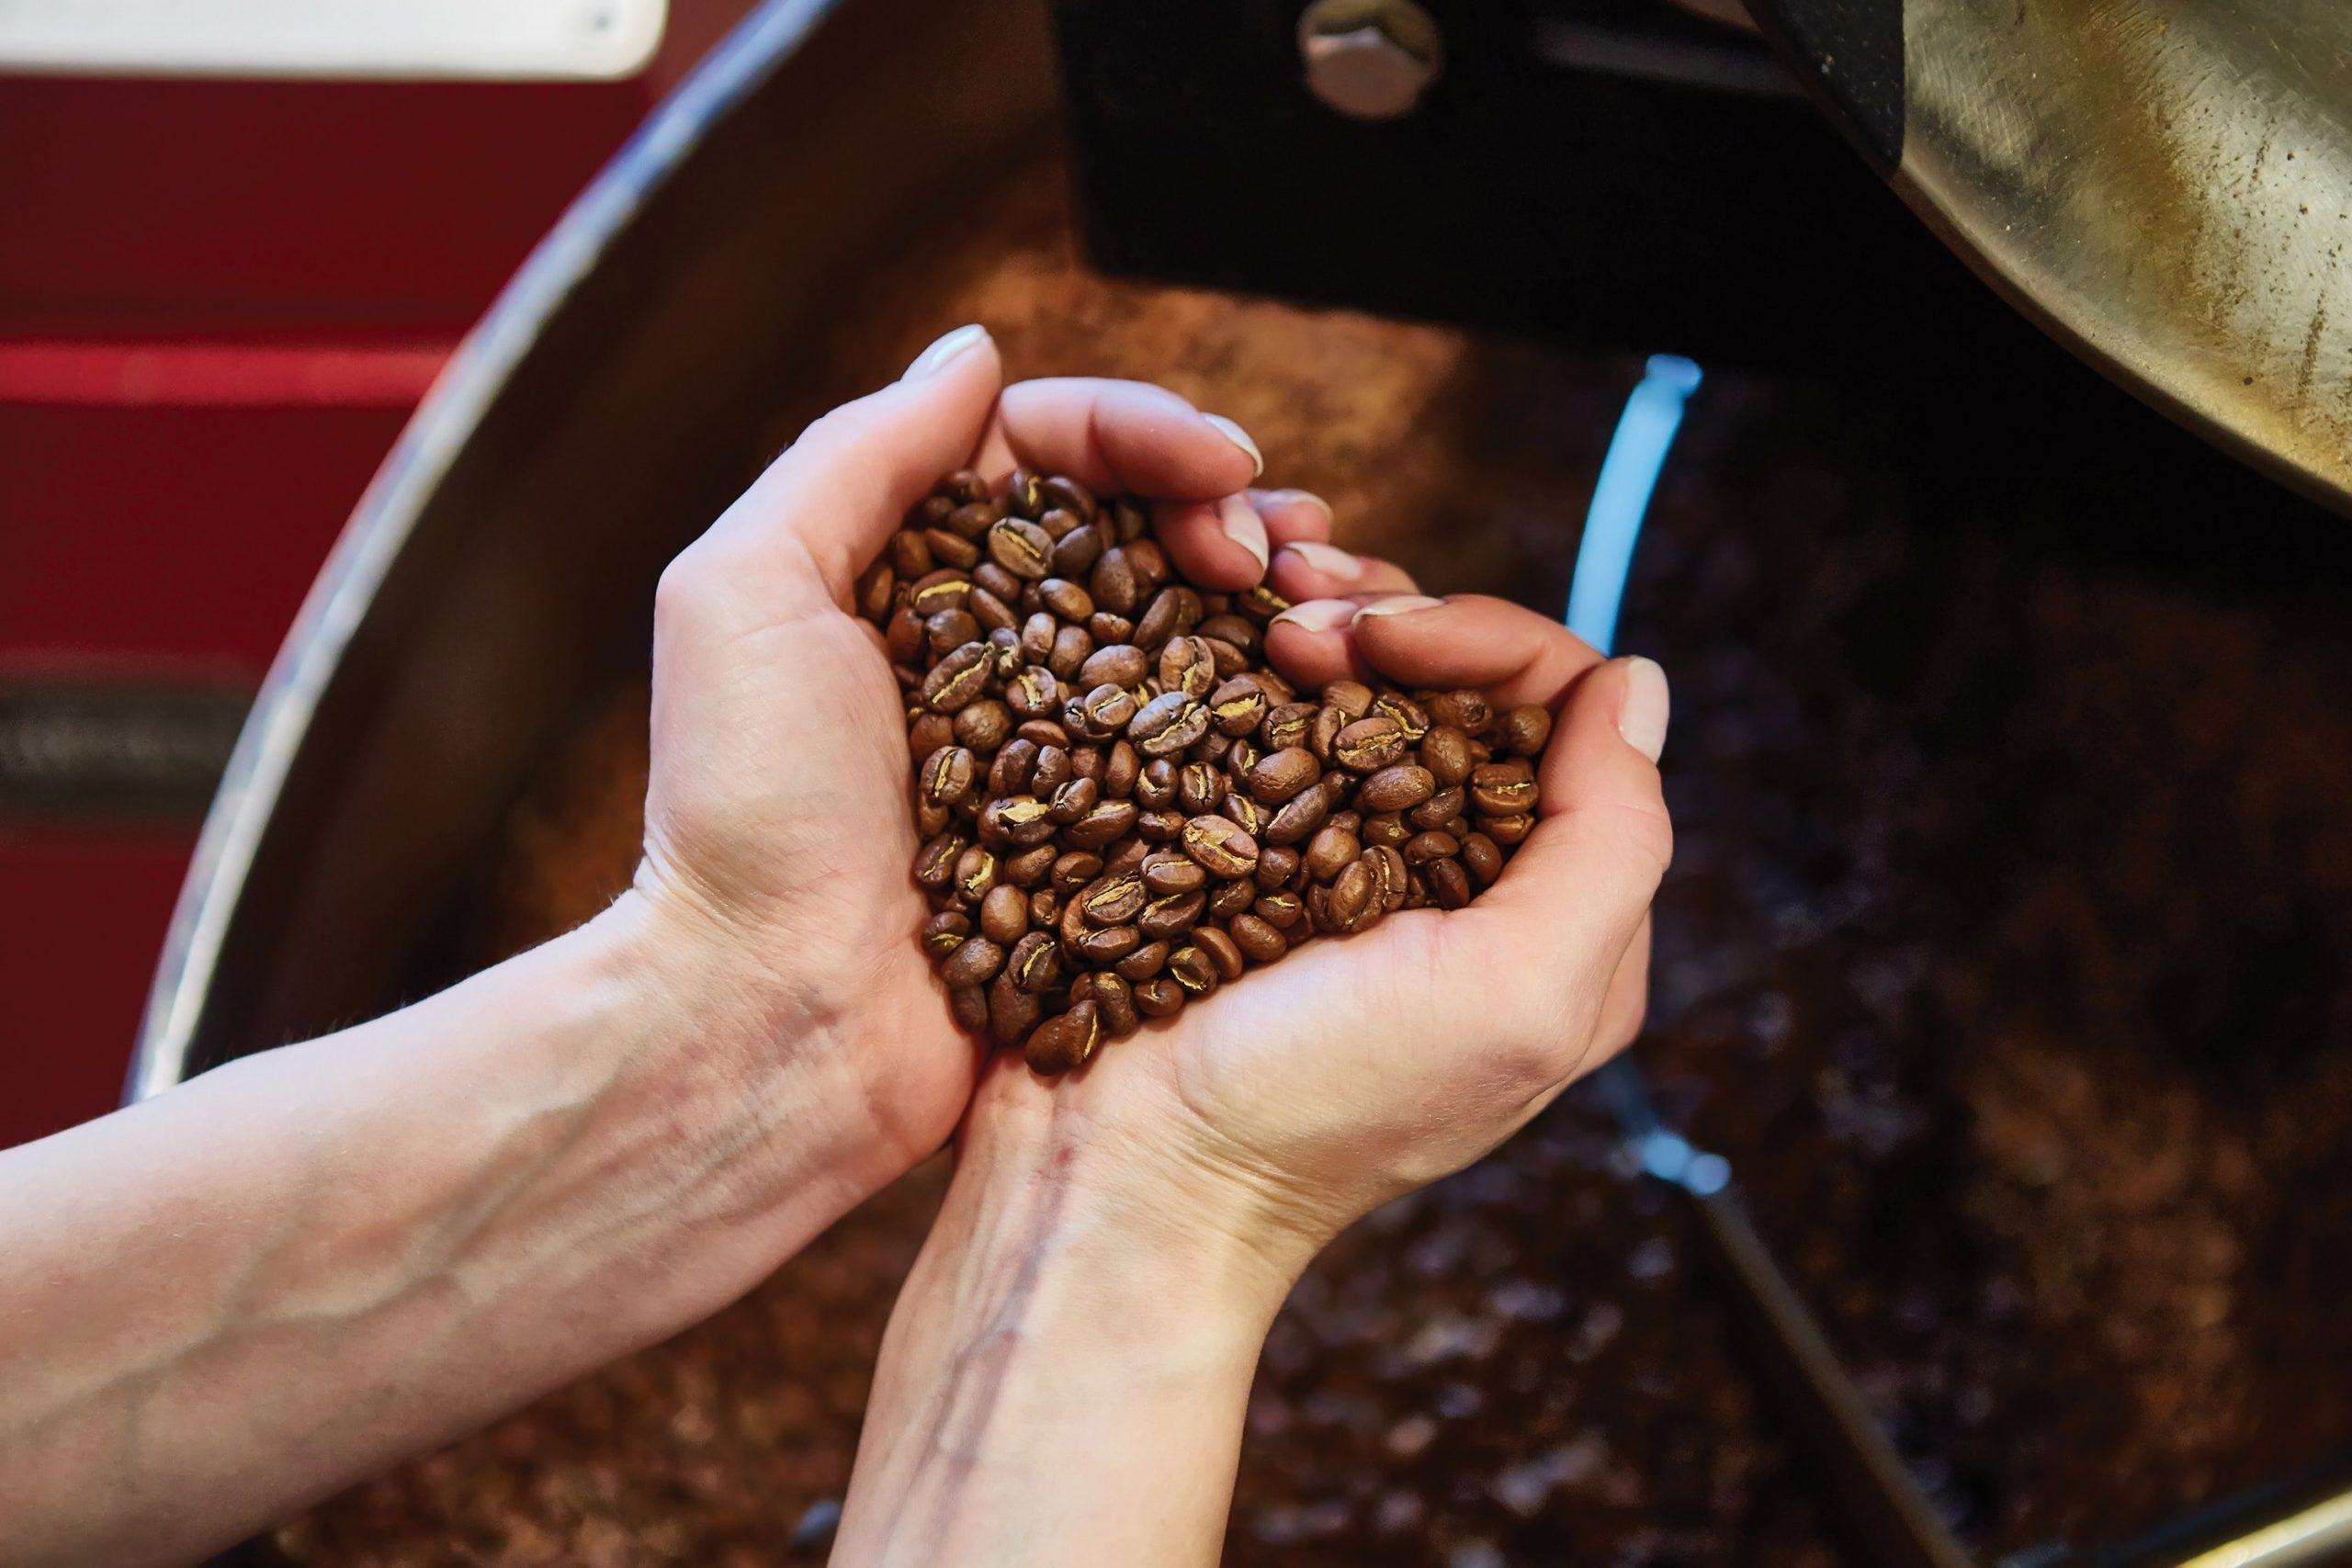 New roastery and coffee bar opening in Jackson Township